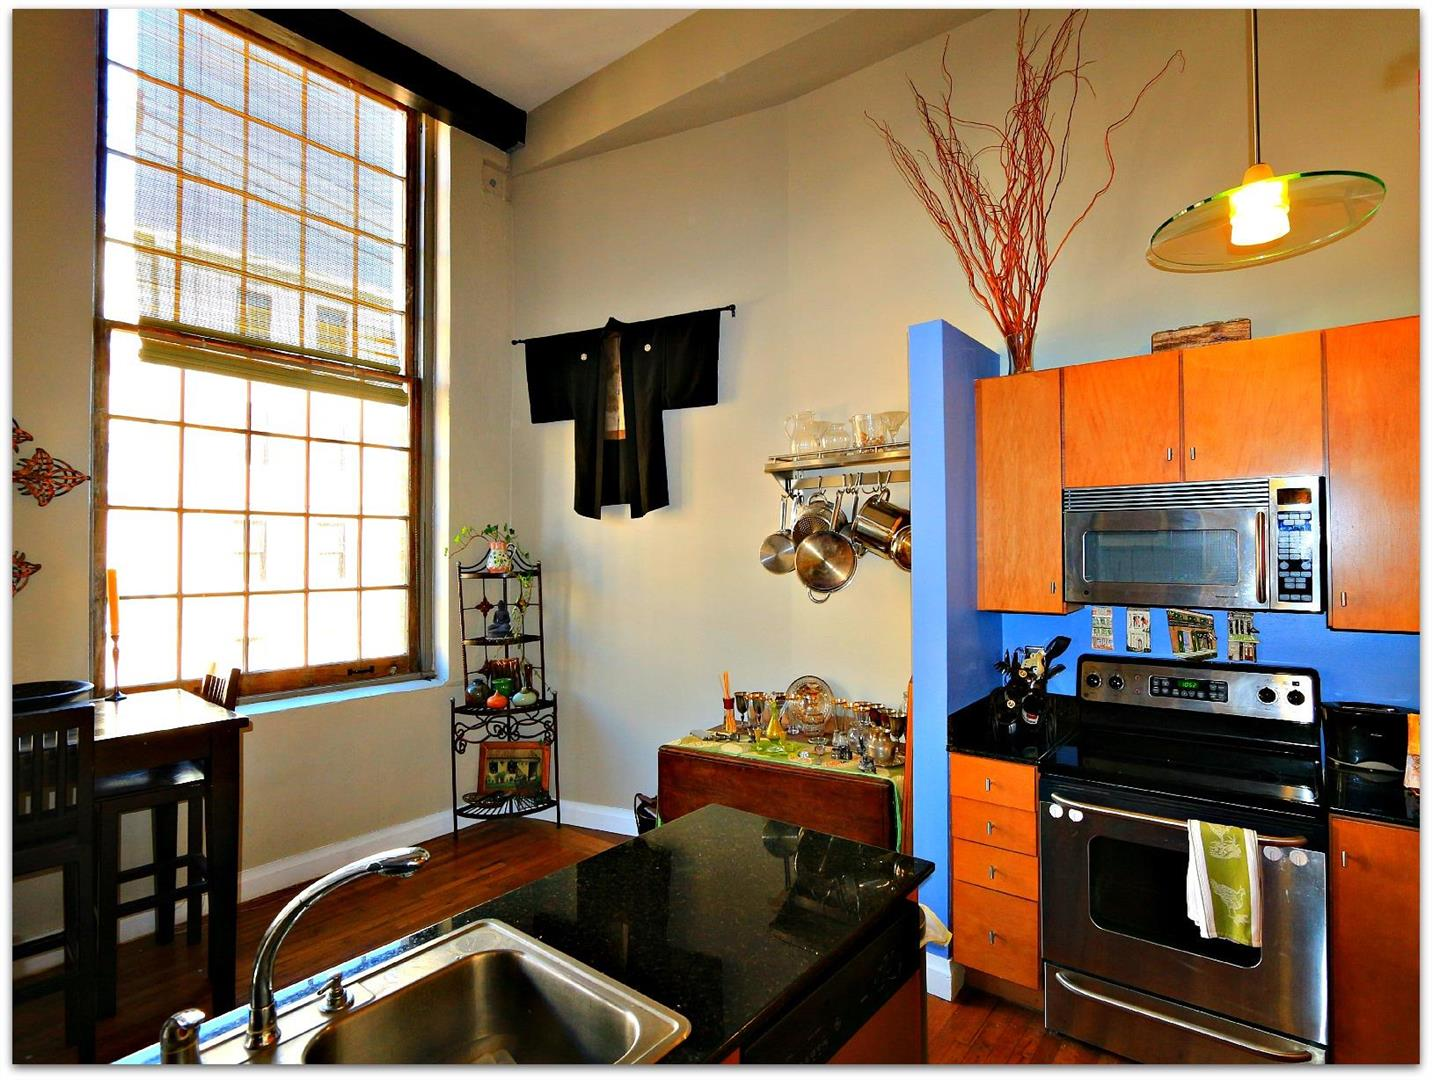 920Poeyfarre211,Kitchen.jpg